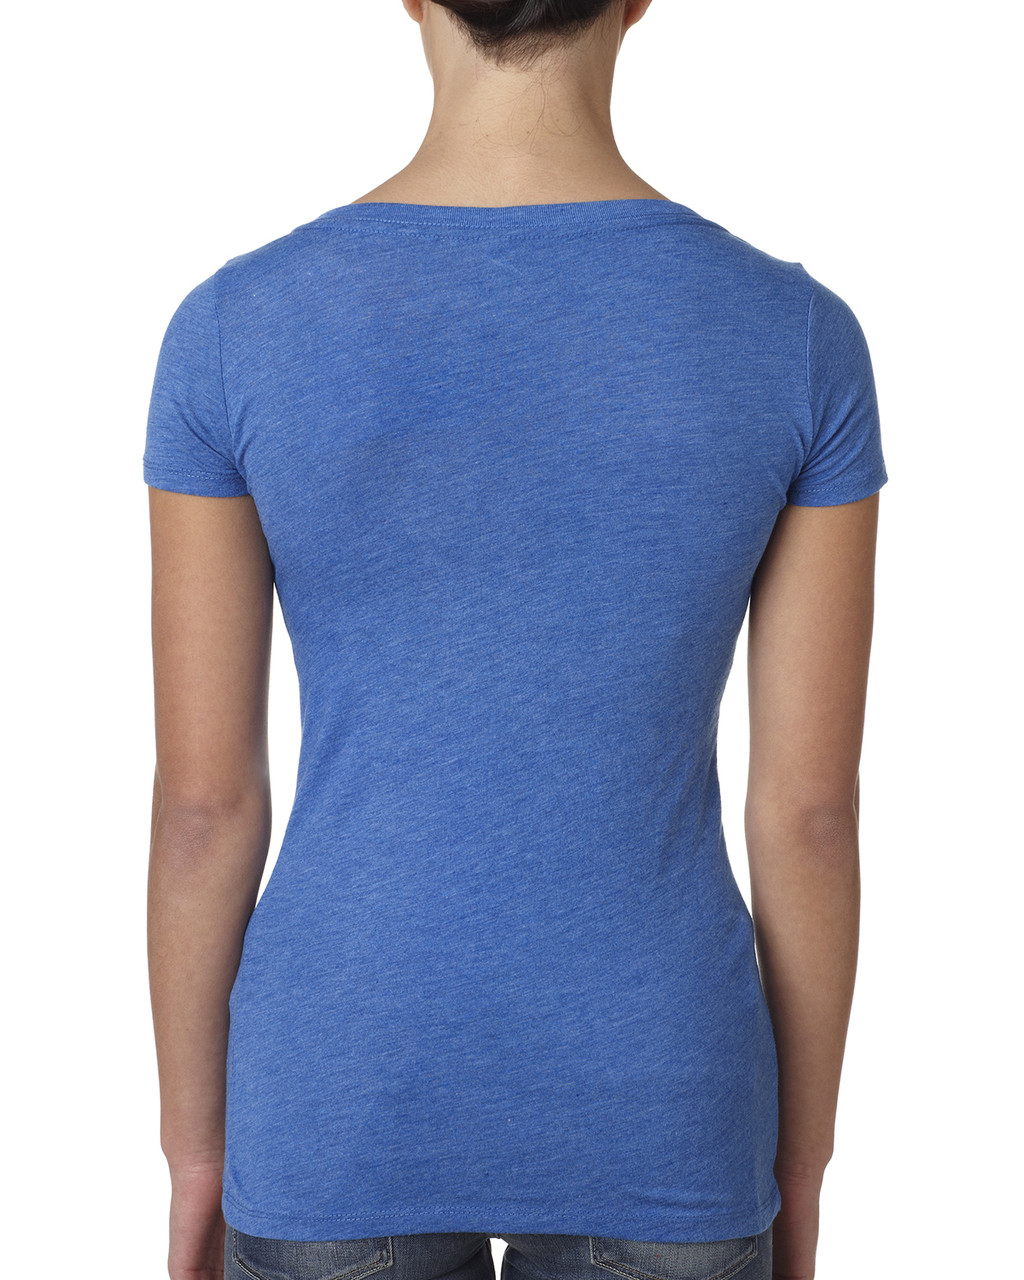 Vintage Royal, back 6730 Next Level Ladies' Tri-Blend Scoop Tee | Blankclothing.ca